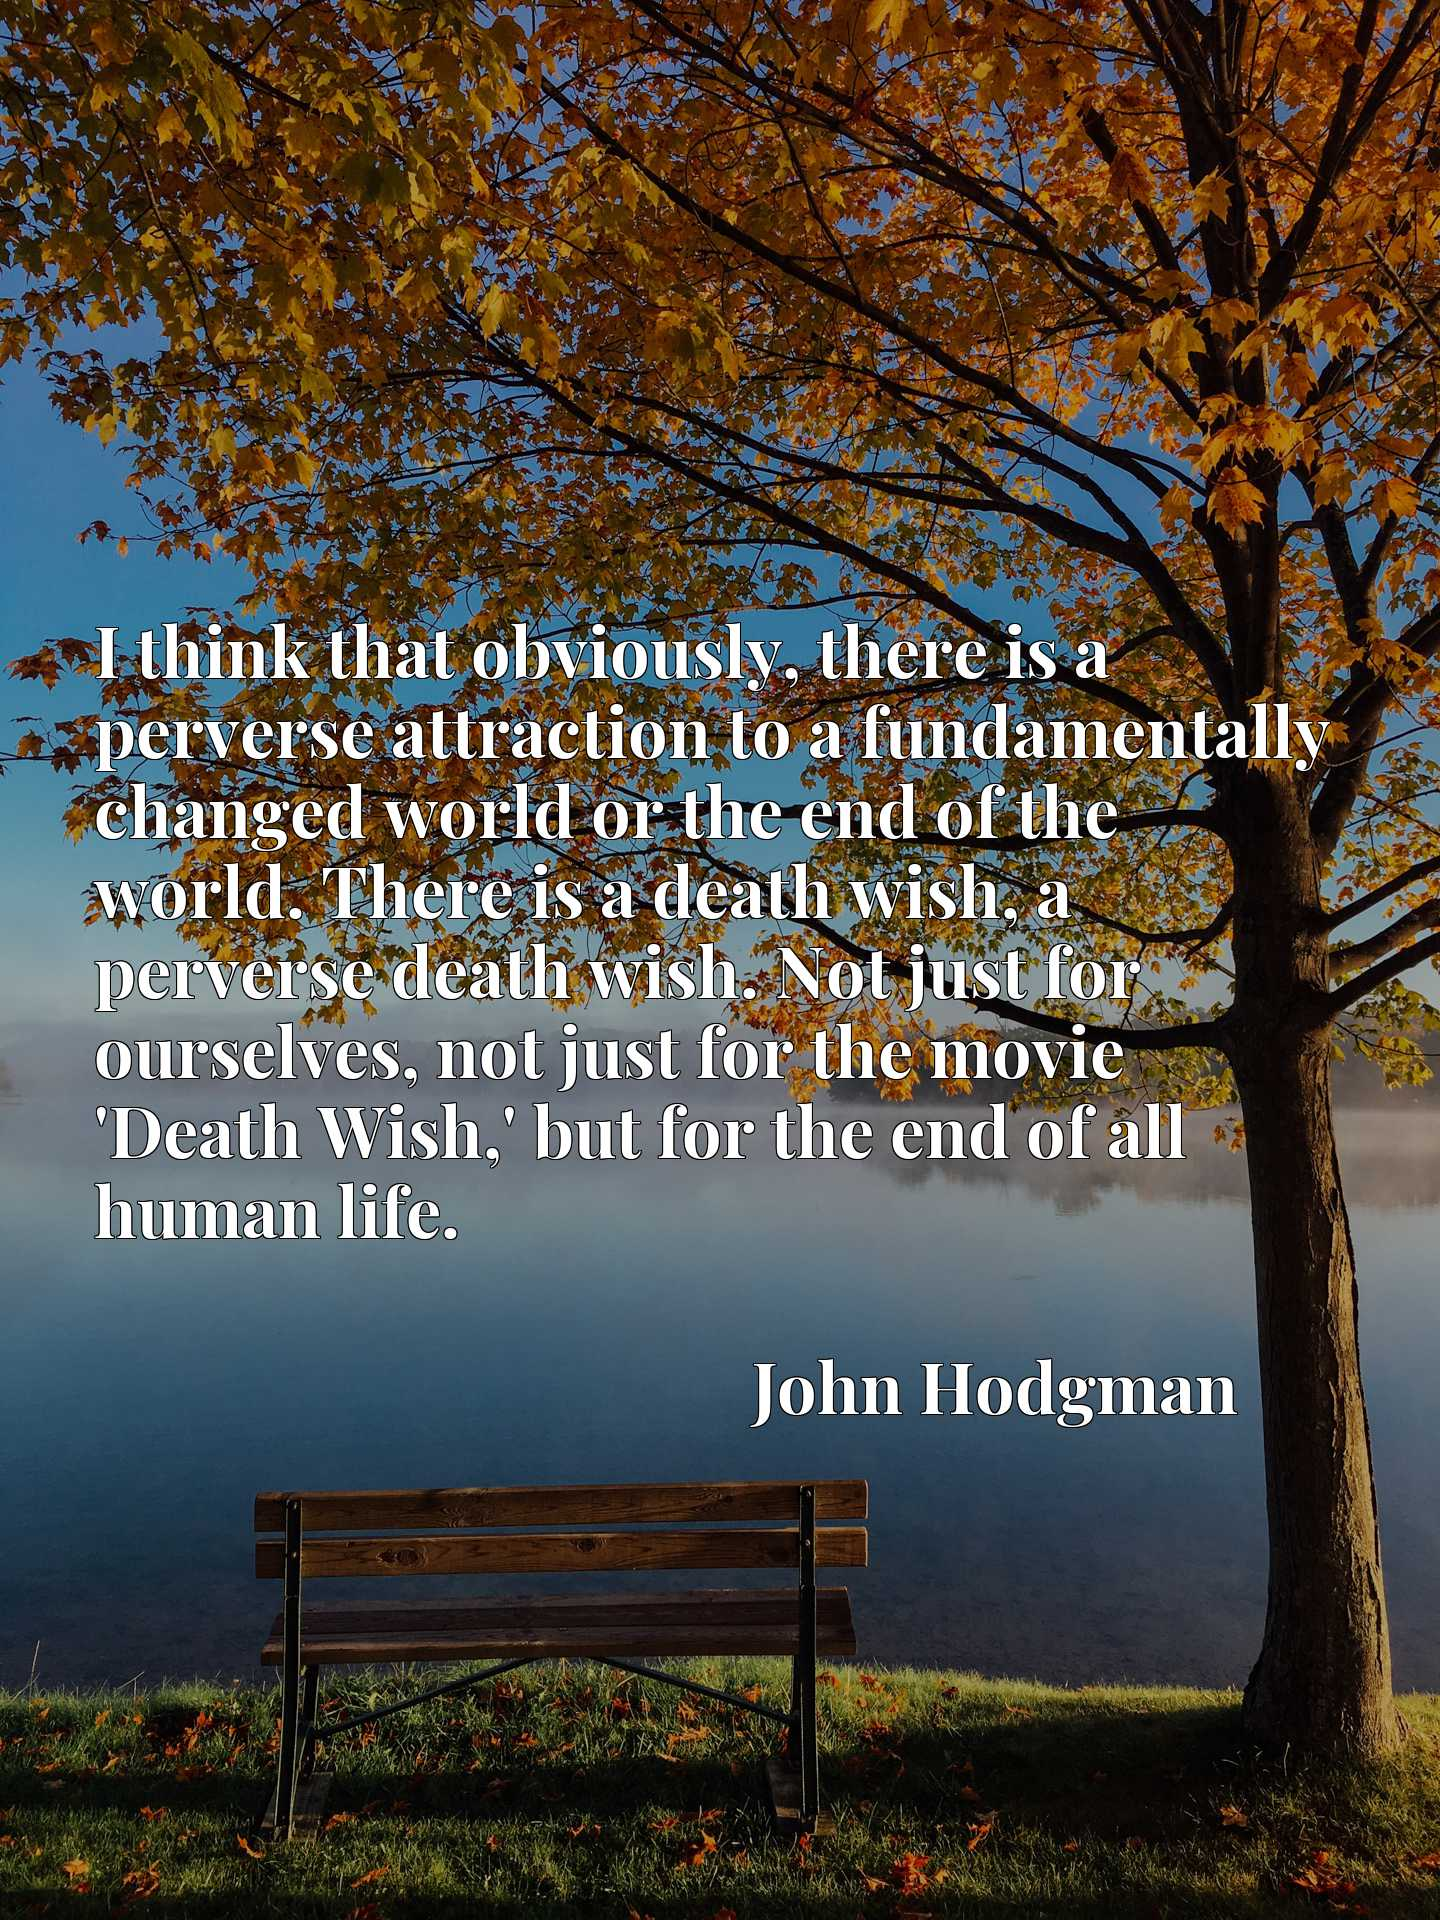 I think that obviously, there is a perverse attraction to a fundamentally changed world or the end of the world. There is a death wish, a perverse death wish. Not just for ourselves, not just for the movie 'Death Wish,' but for the end of all human life.